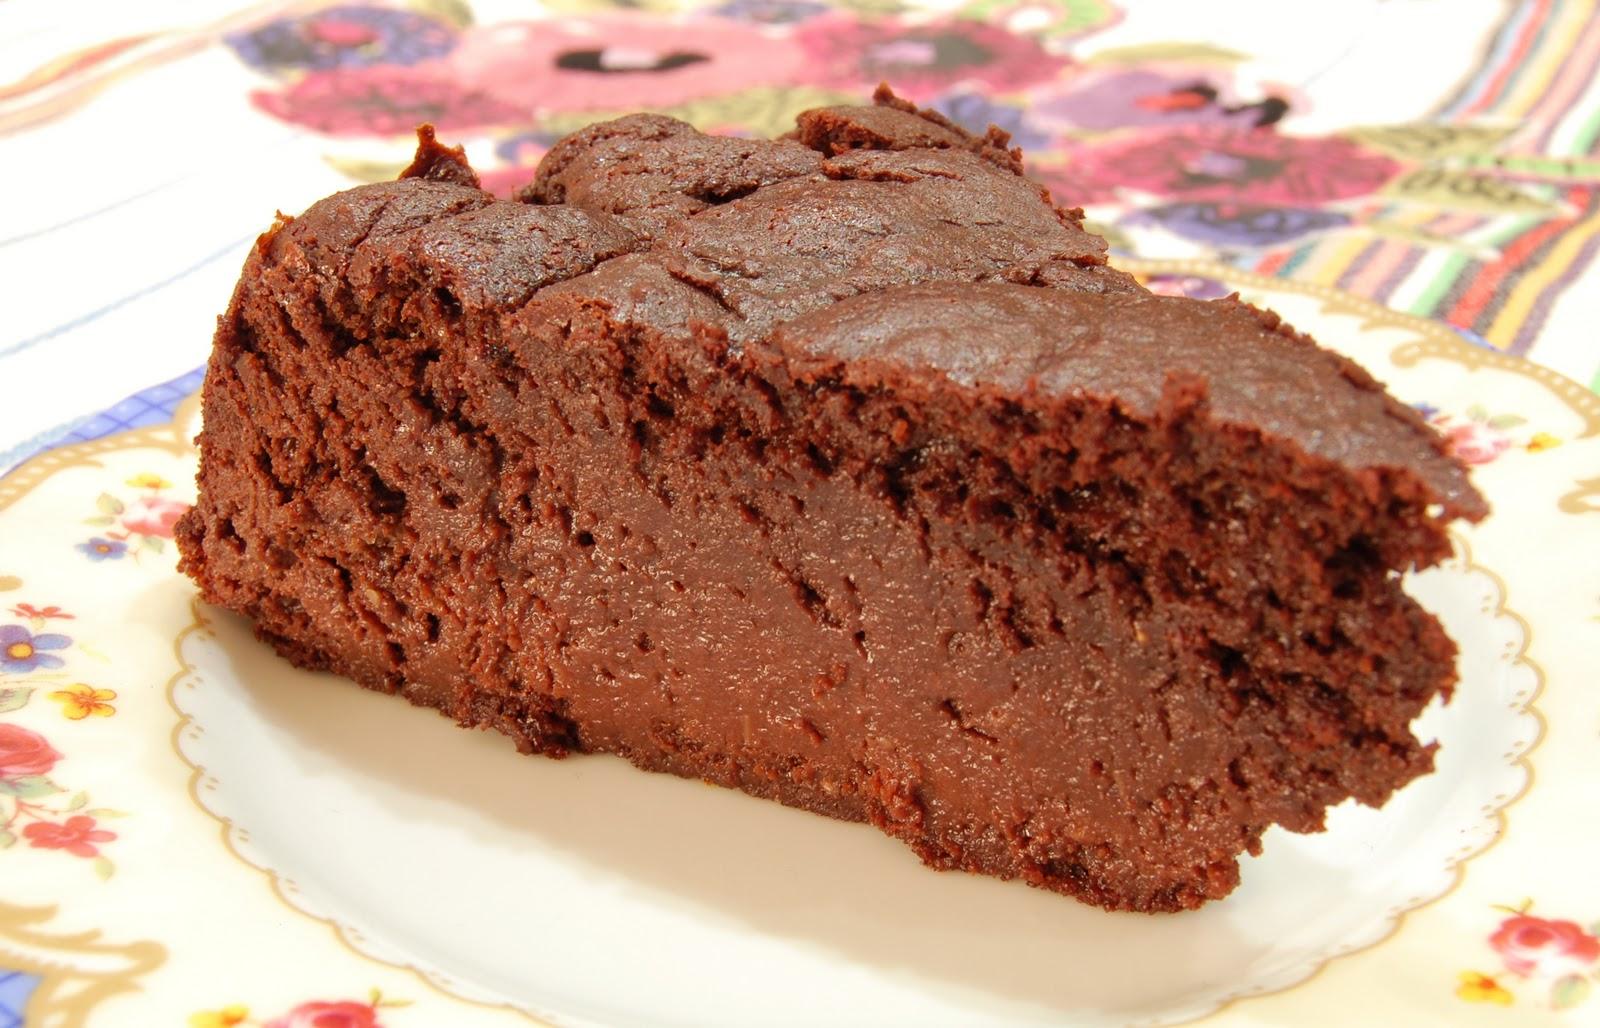 Edinburgh Eats: Baking Sunday: Heartache Chocolate Aubergine Cake